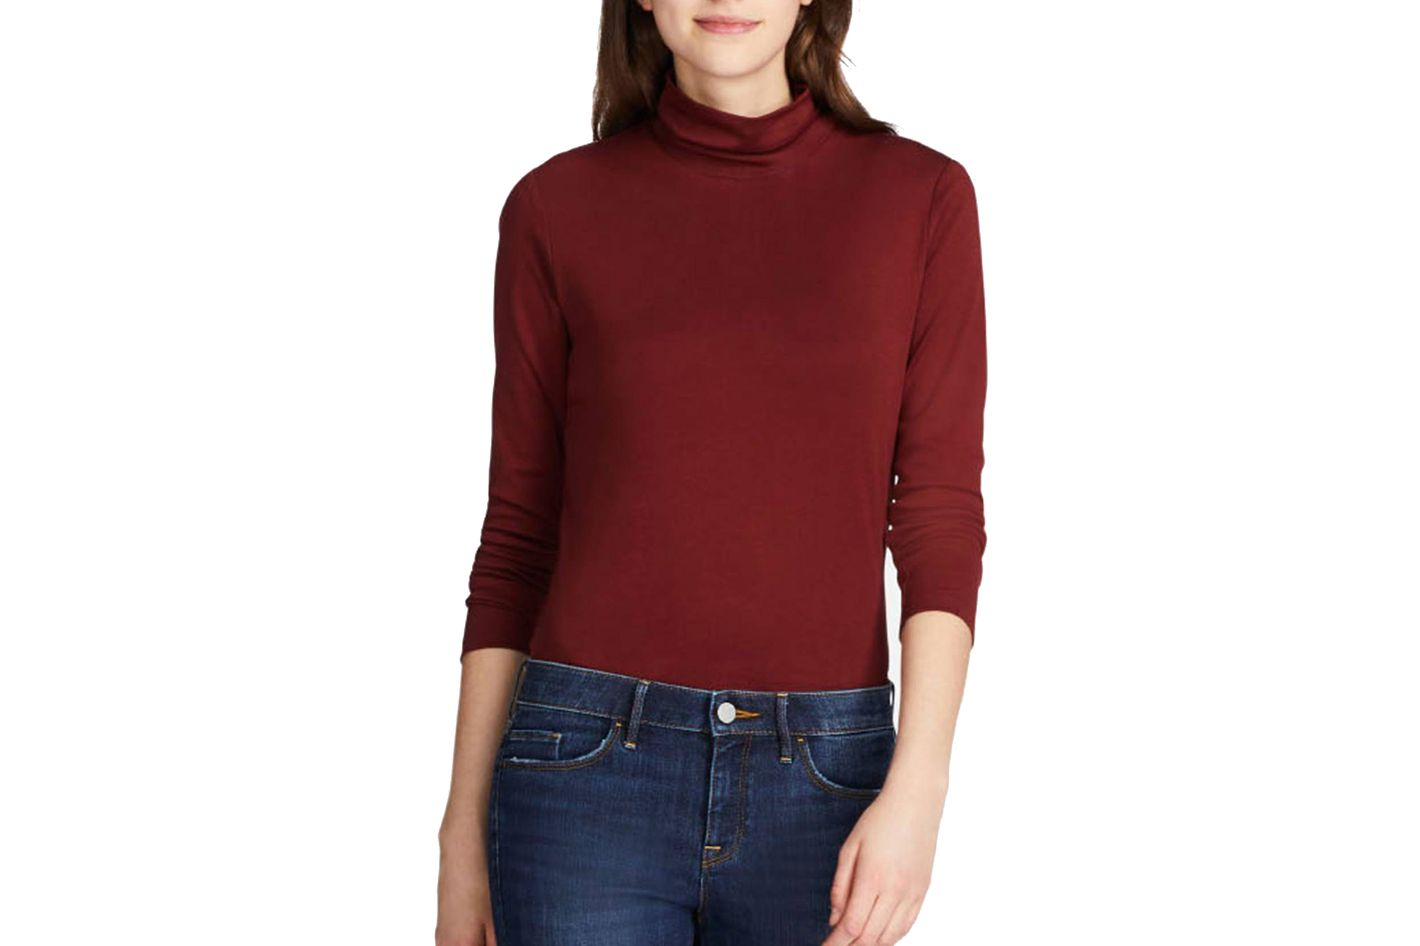 Uniqlo Women s Supima Cotton Long-Sleeve Turtleneck 0aaa34f63